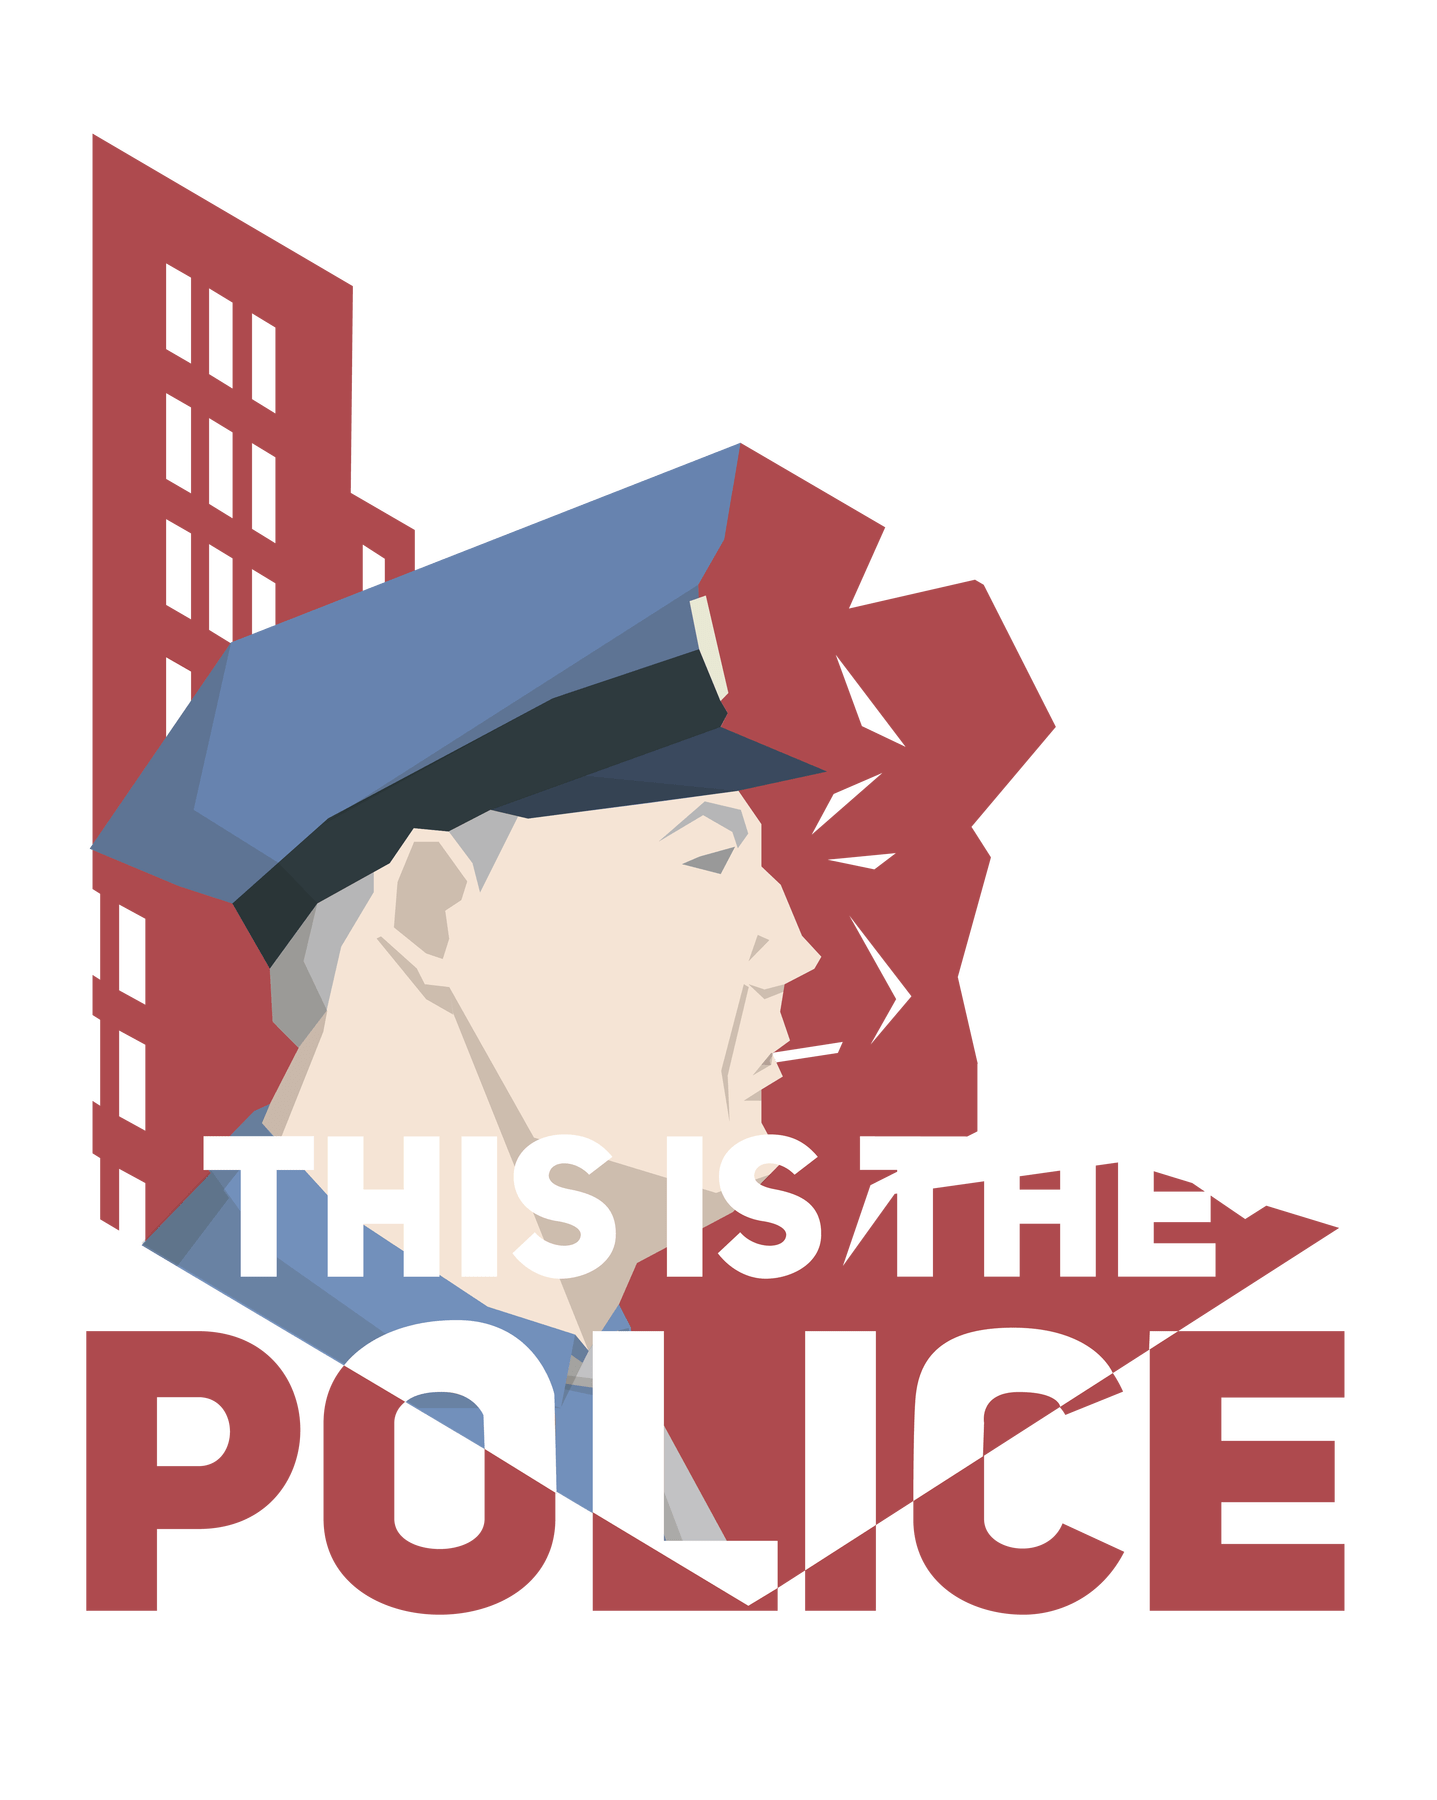 Streamers clipart graduation. This is the police